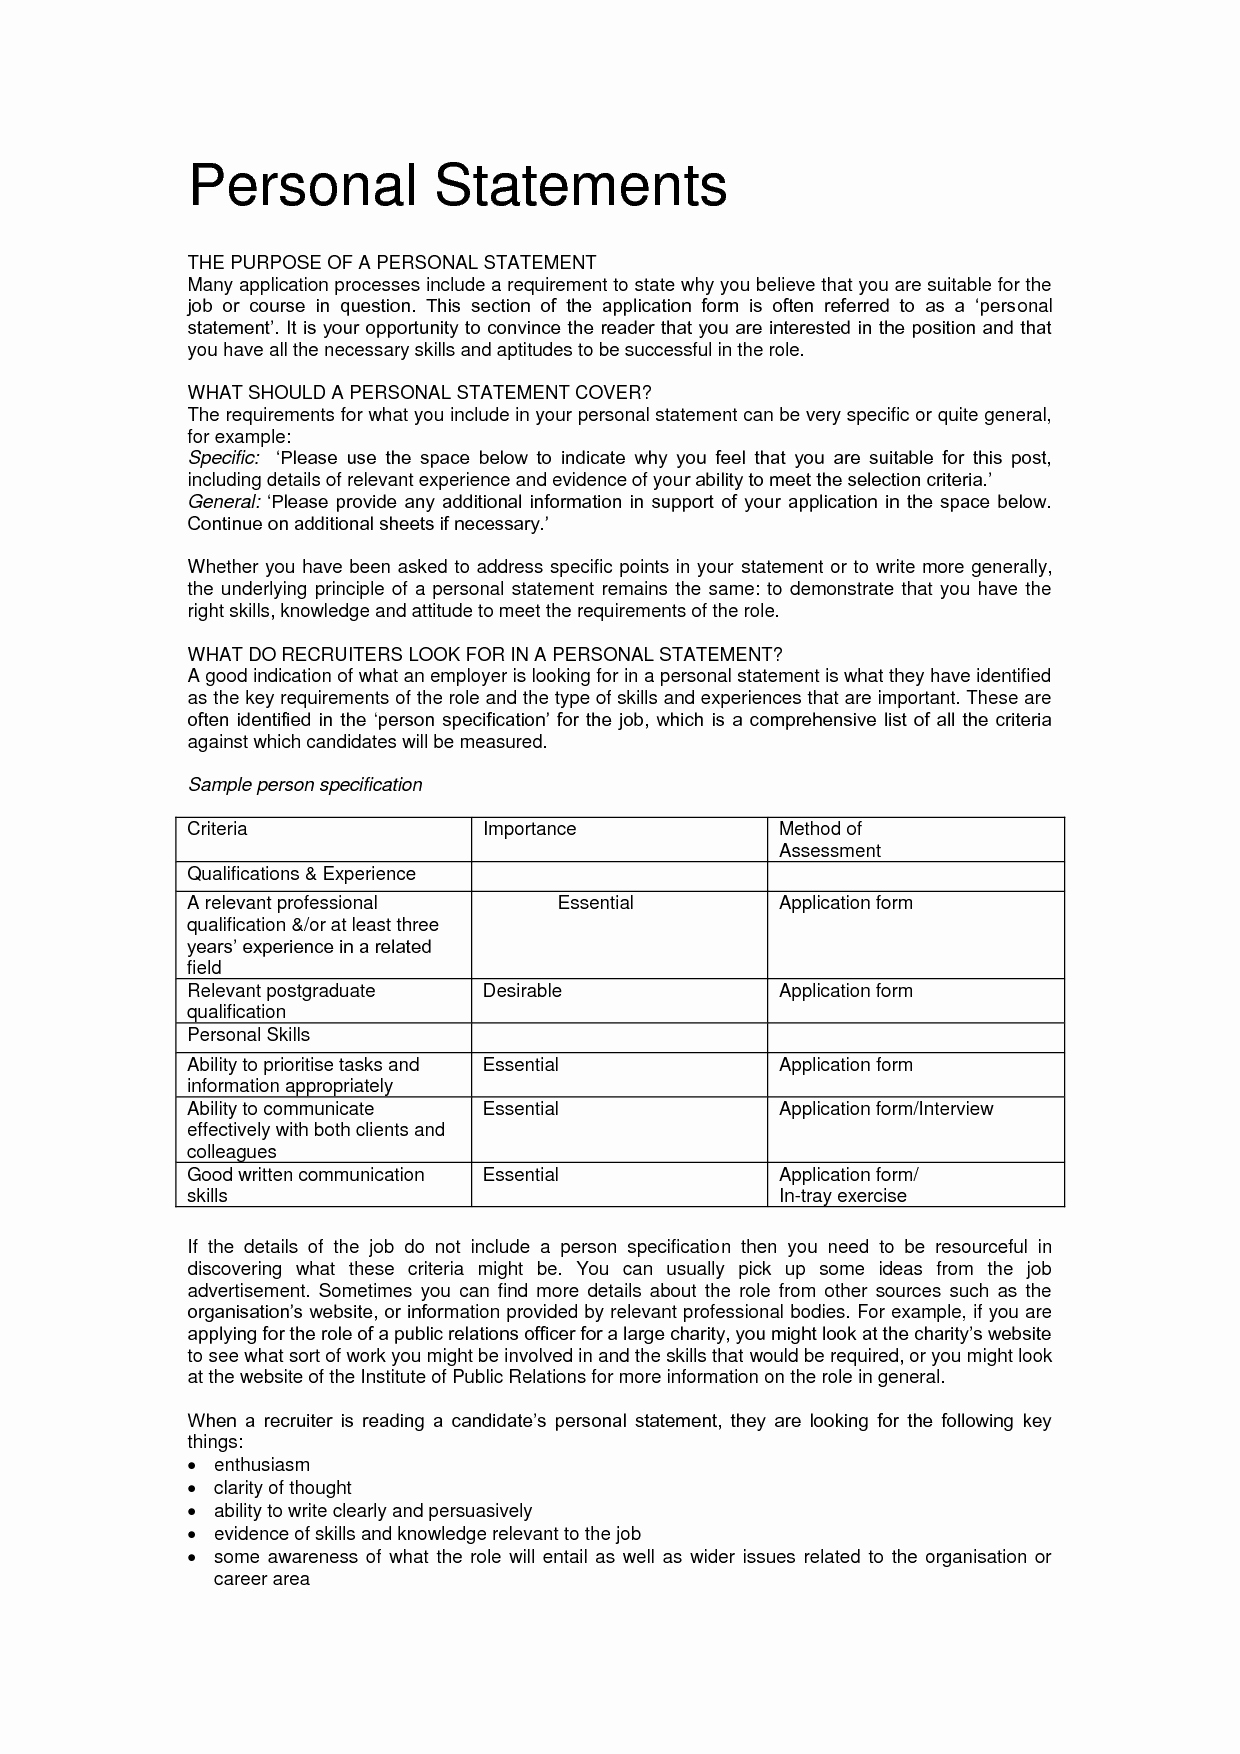 Uc Application Personal Statements Best Of Personal Statement Uc Template S5myplwl